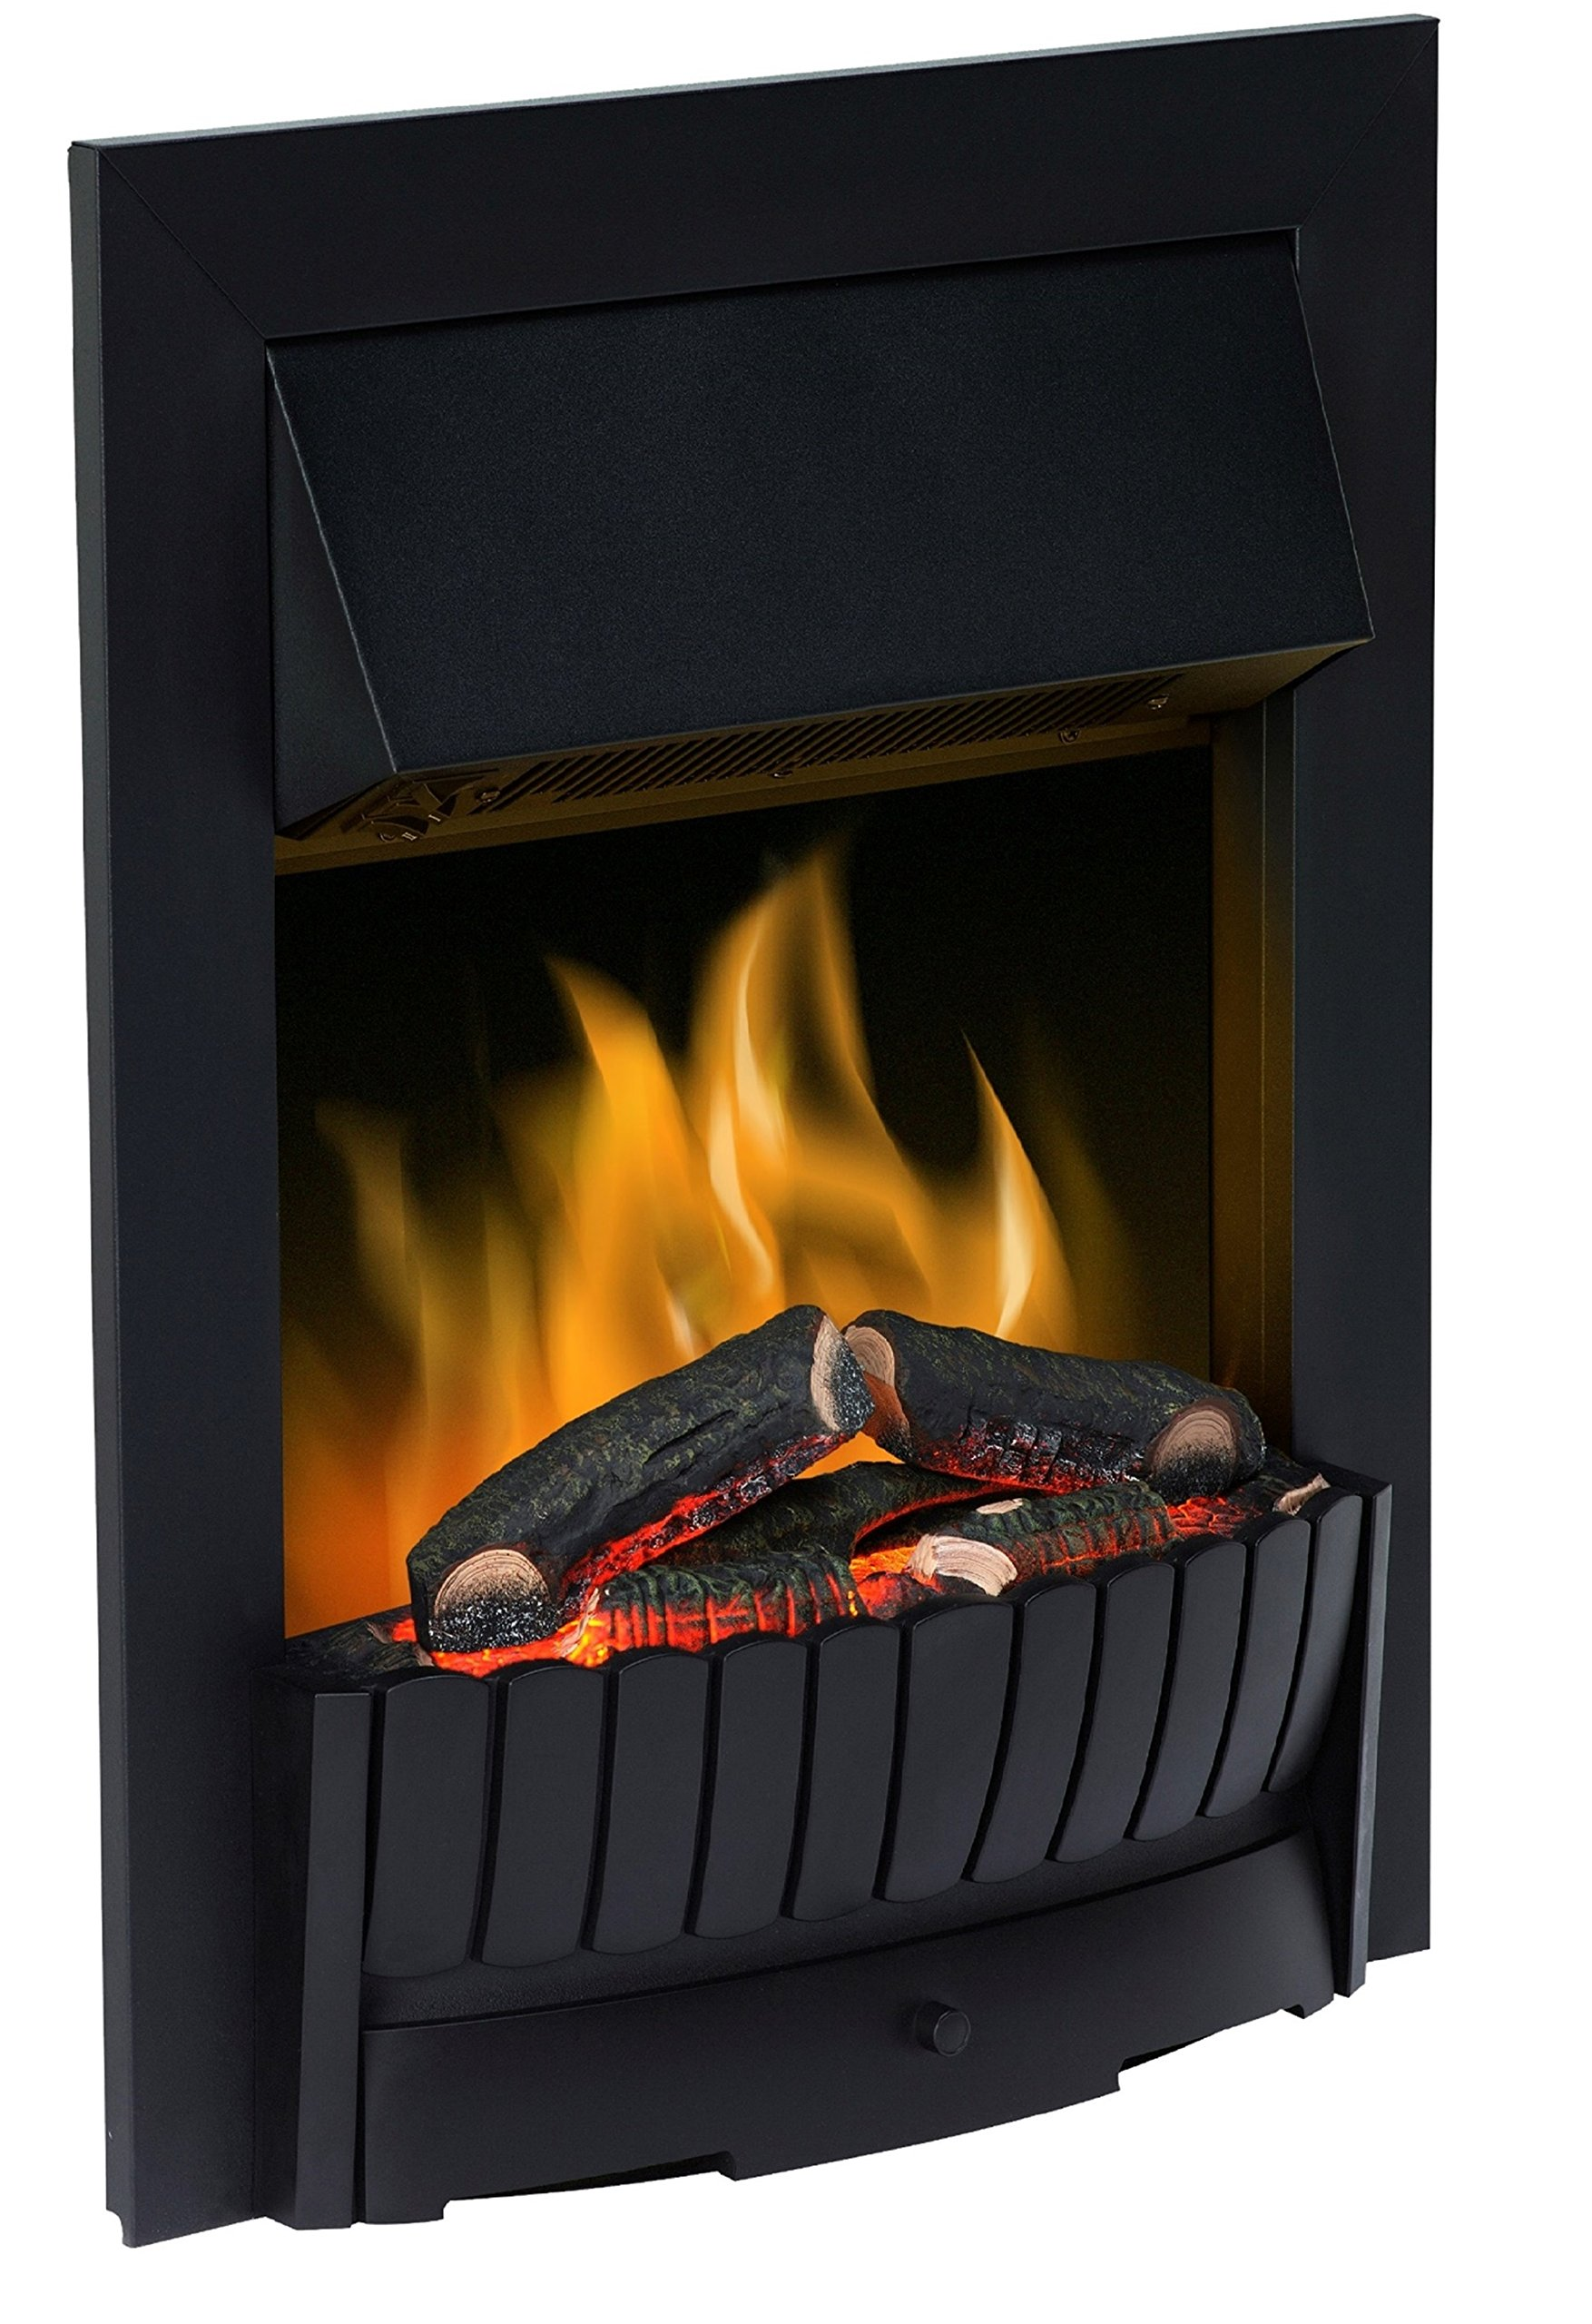 81e3XiQ4mCL - Dimplex CMT20 Clement Electric Inset Fire with Optiflame Effect, 2 Kw, 230 W